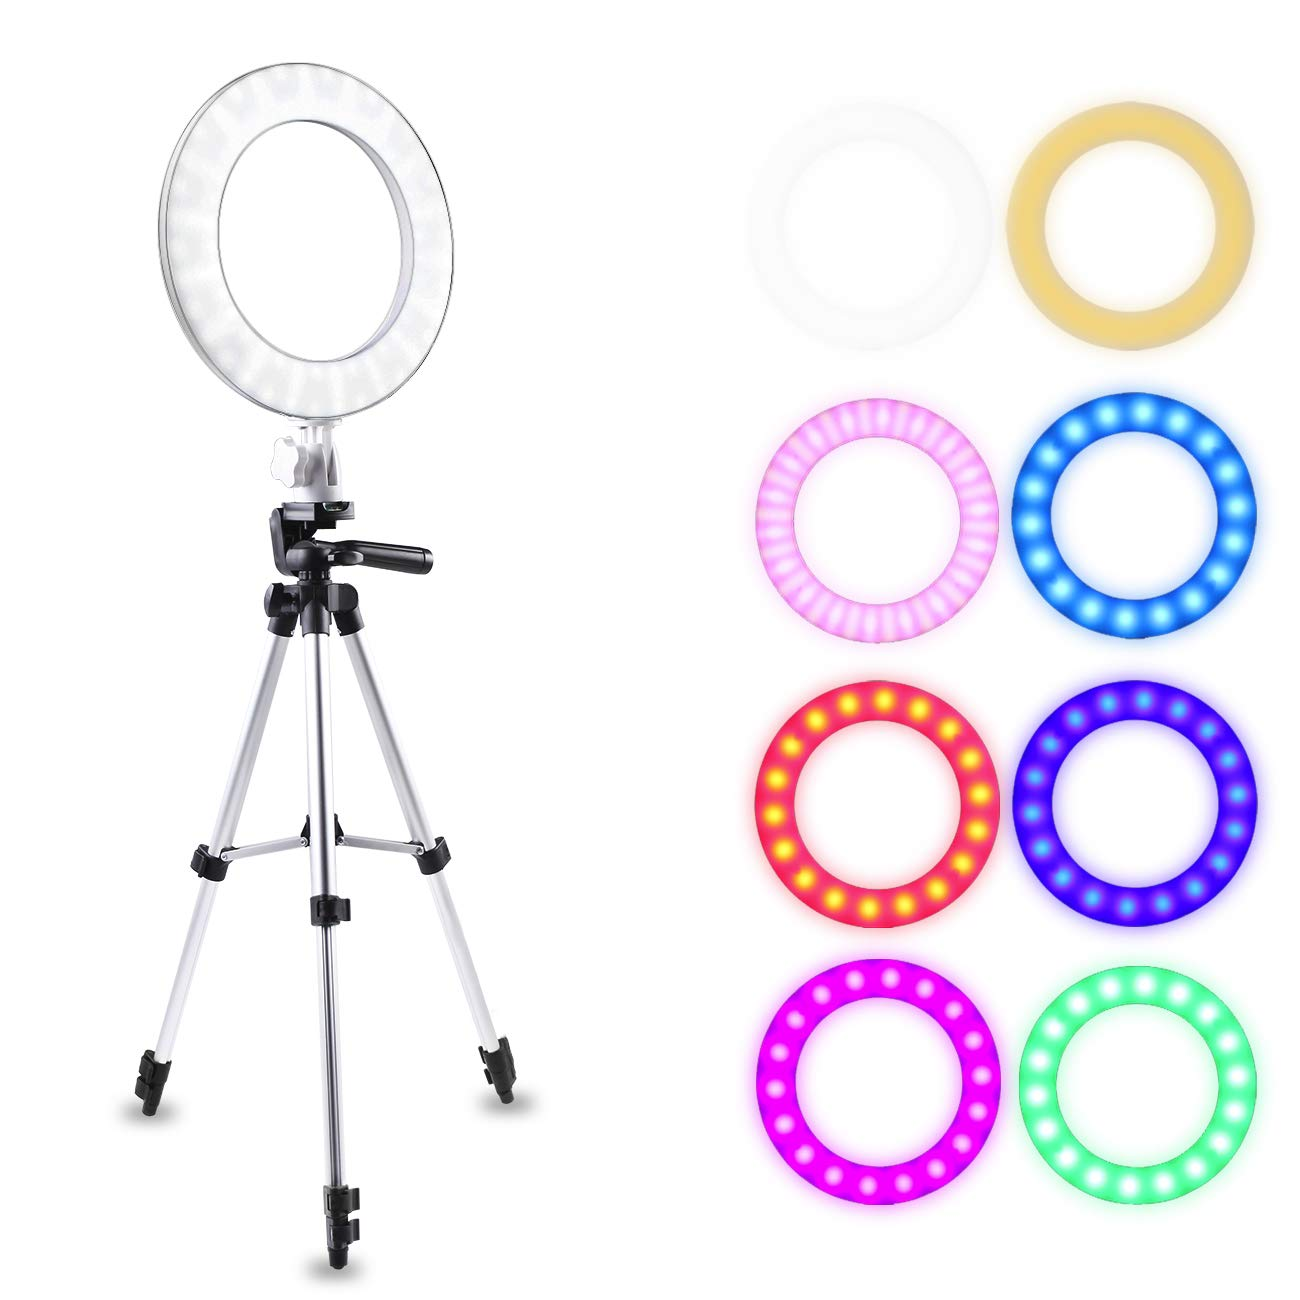 LED Ring Light, Atuten 10'' Dimmable Selfie Ring Light with Stretchable Tripod Stand for Smartphone Take Photos, Live Stream, Makeup, YouTube Video, Photography, 16W, 3200K-7000K(White)